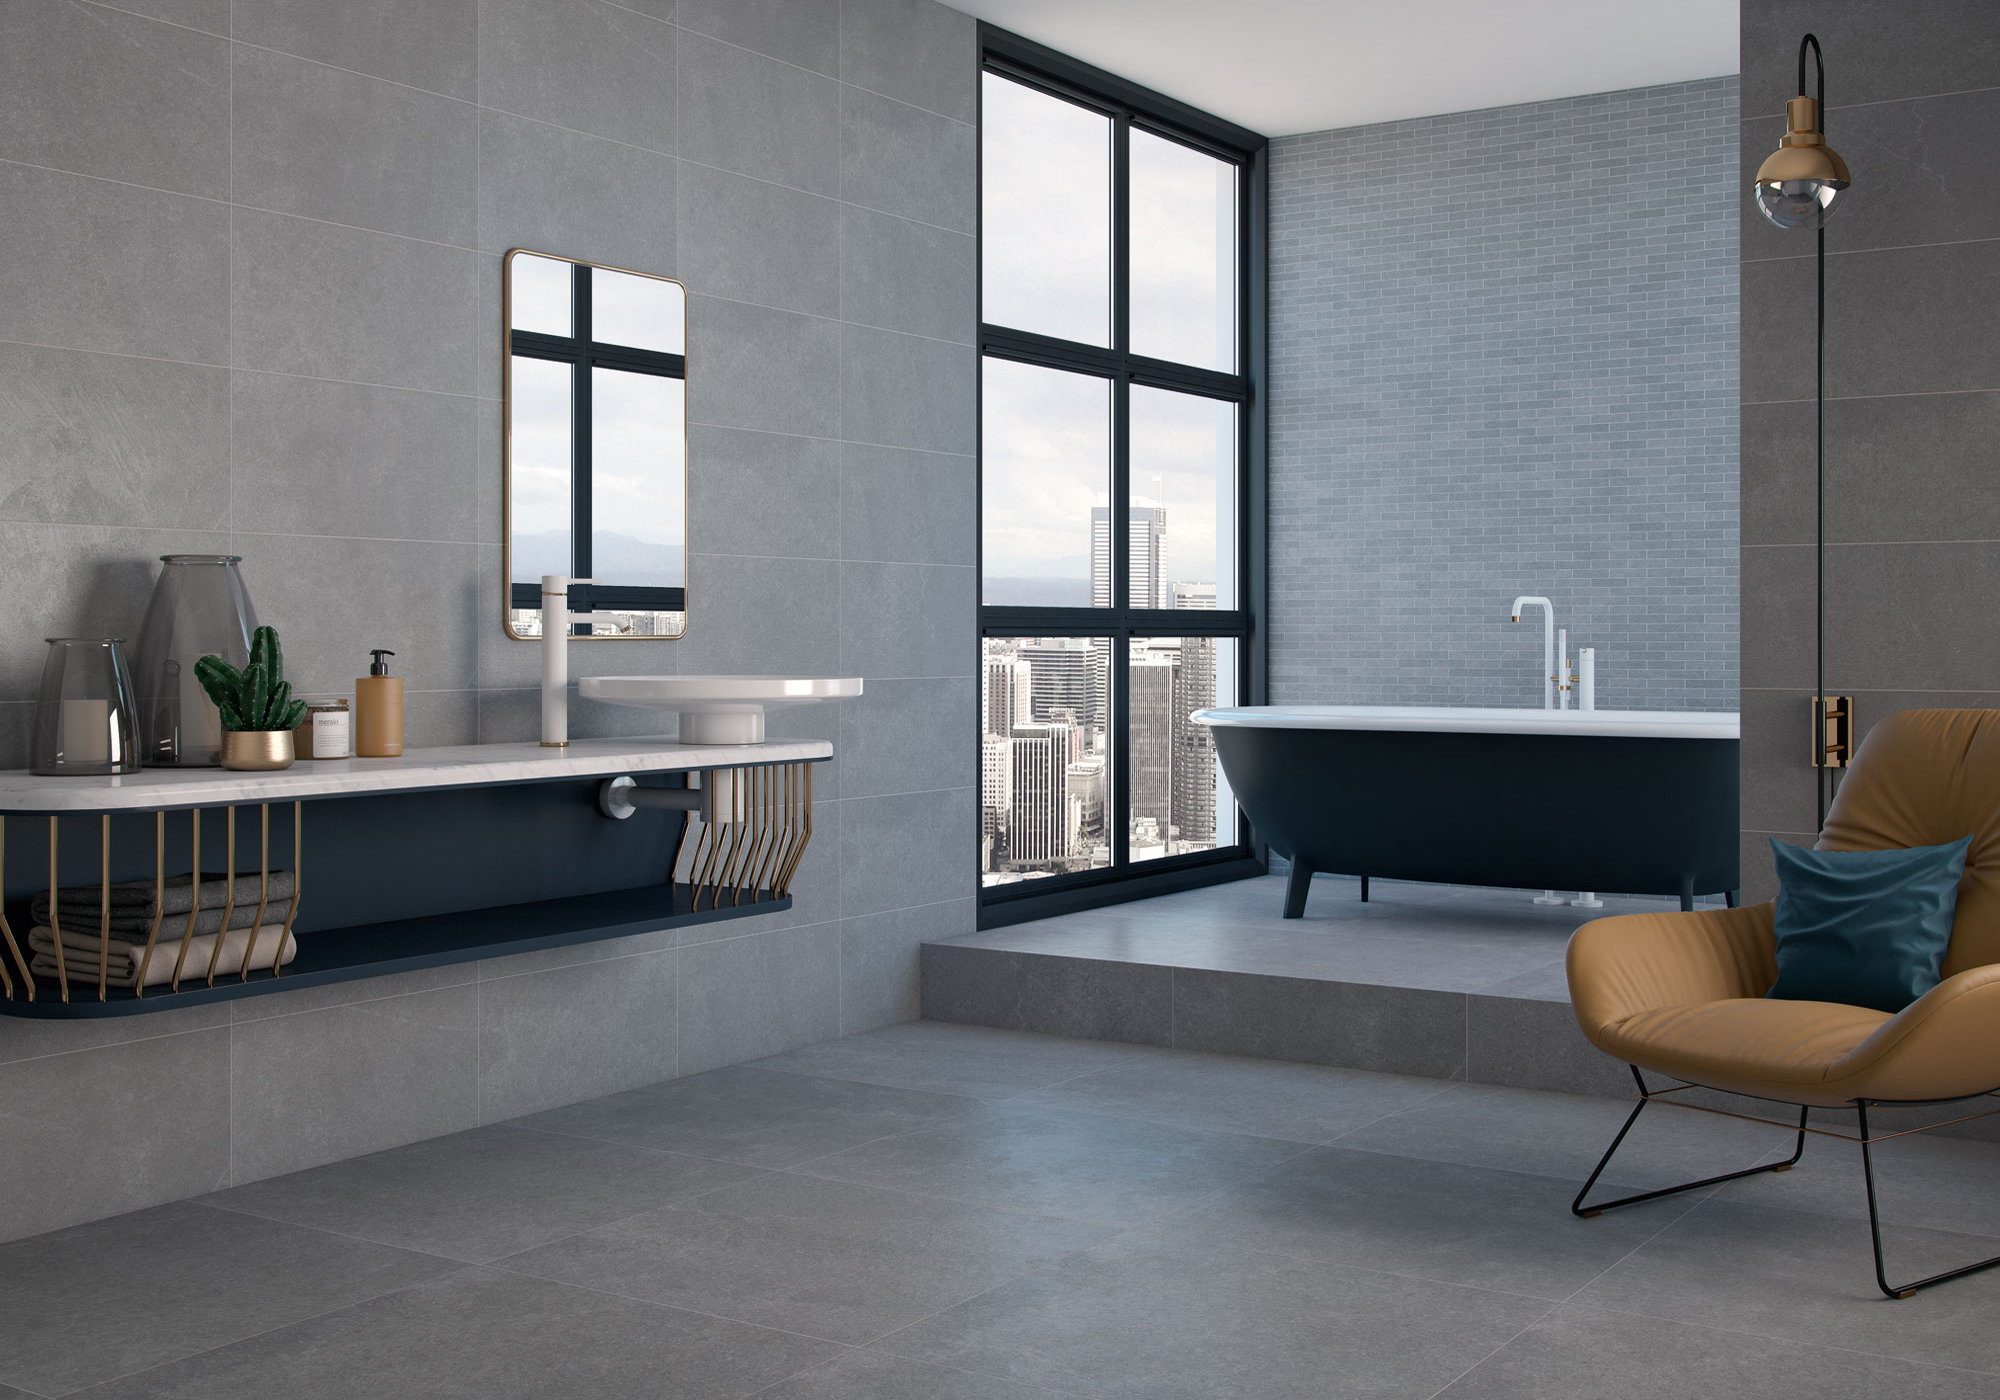 3-pz-floor-terrania-grey-natural-75x75-wall-terrania-grey-natural-37x75-brick-terrania-grey-mix-23x31.jpg